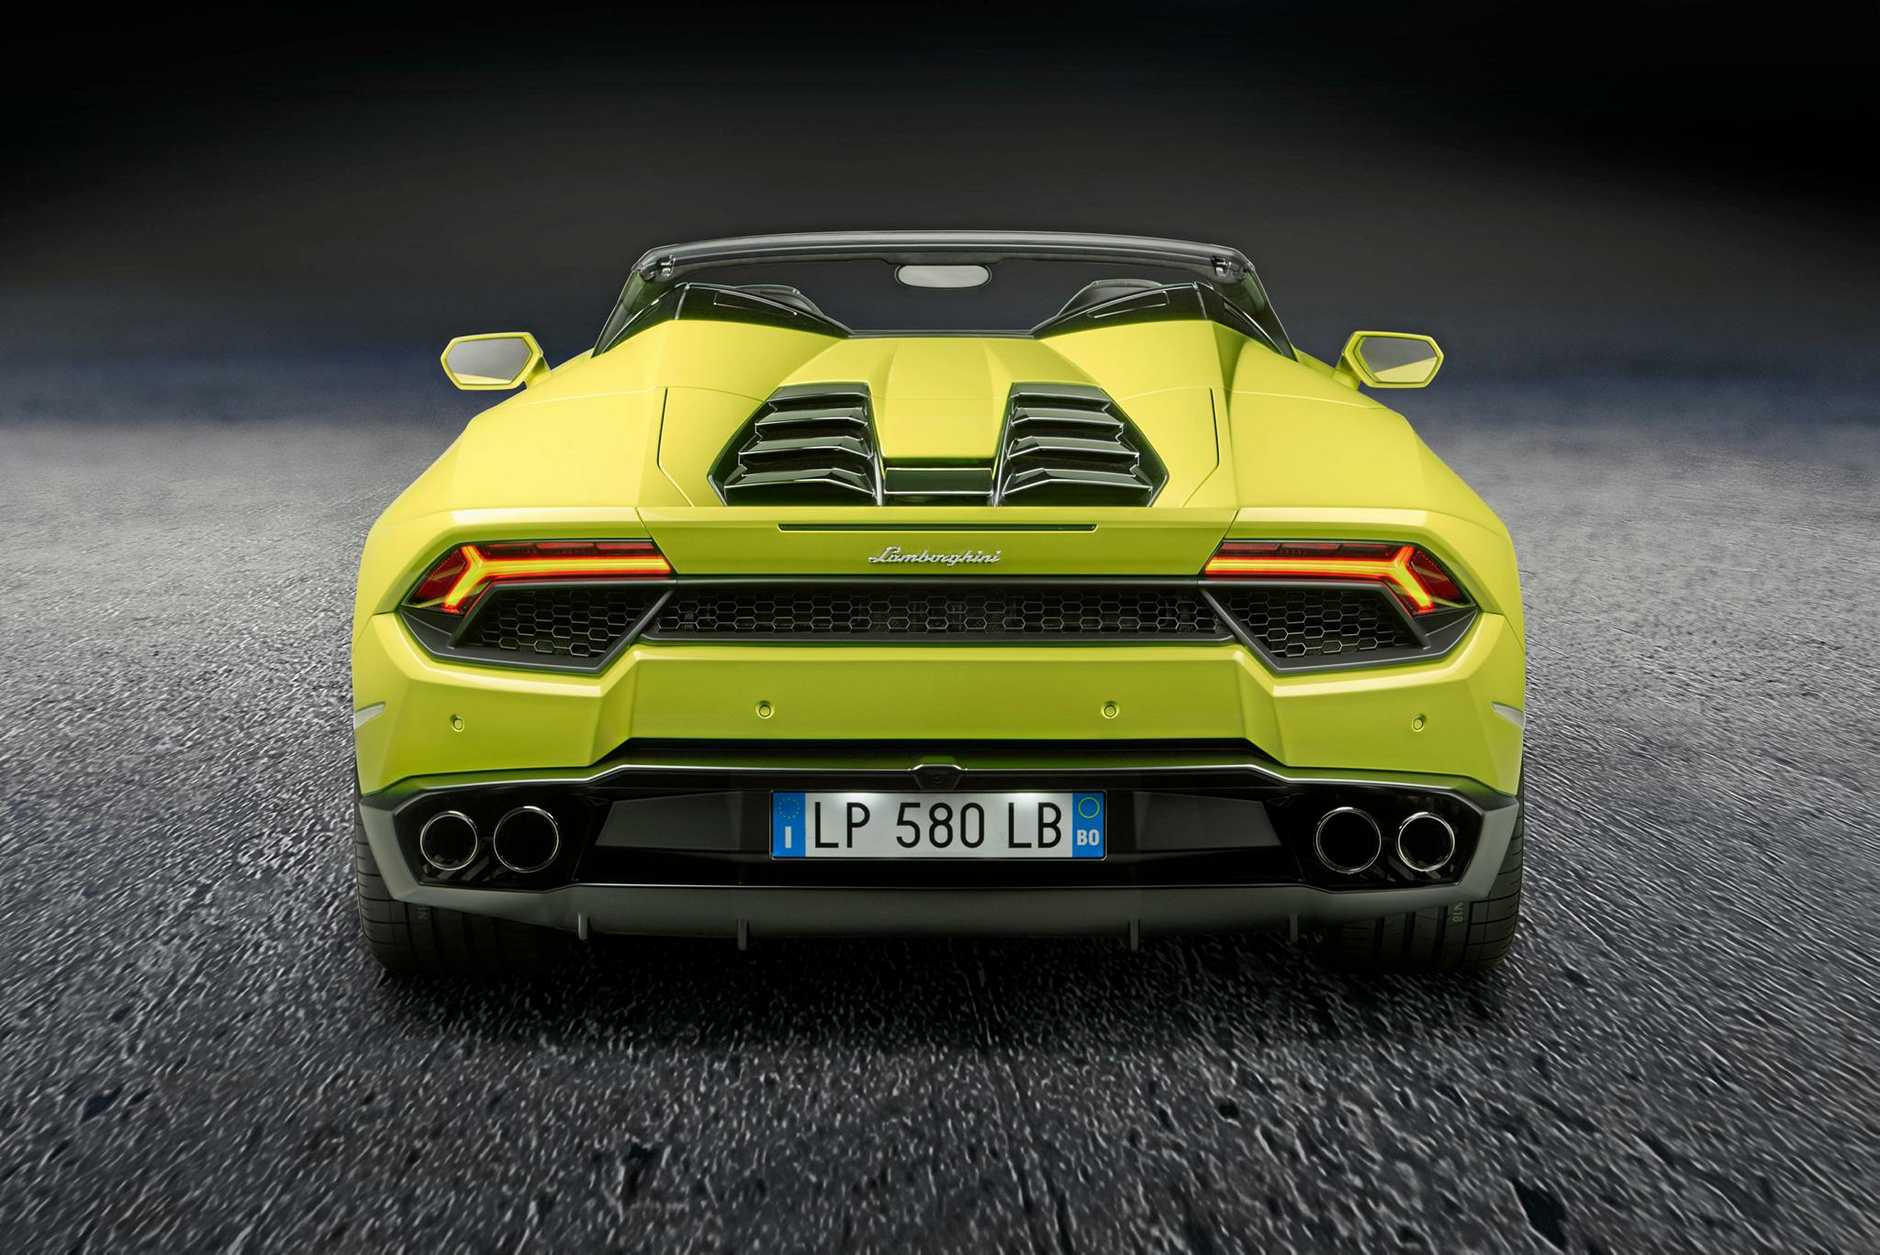 The Lamborghini Huracán rear-wheel drive Spyder.